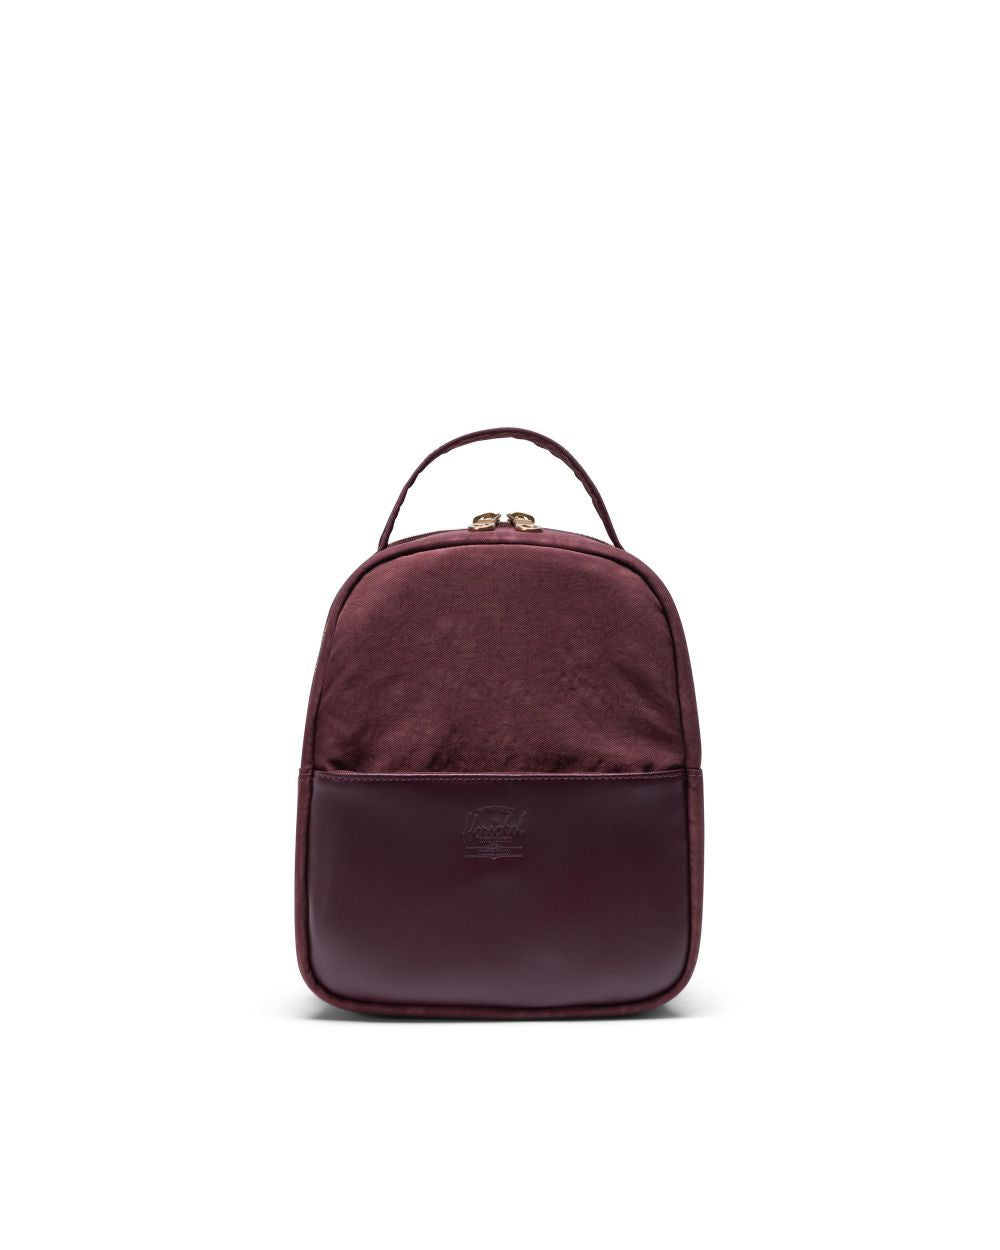 HERSCHEL - ORION BACKPACK MINI IN DEEP BURGENDY